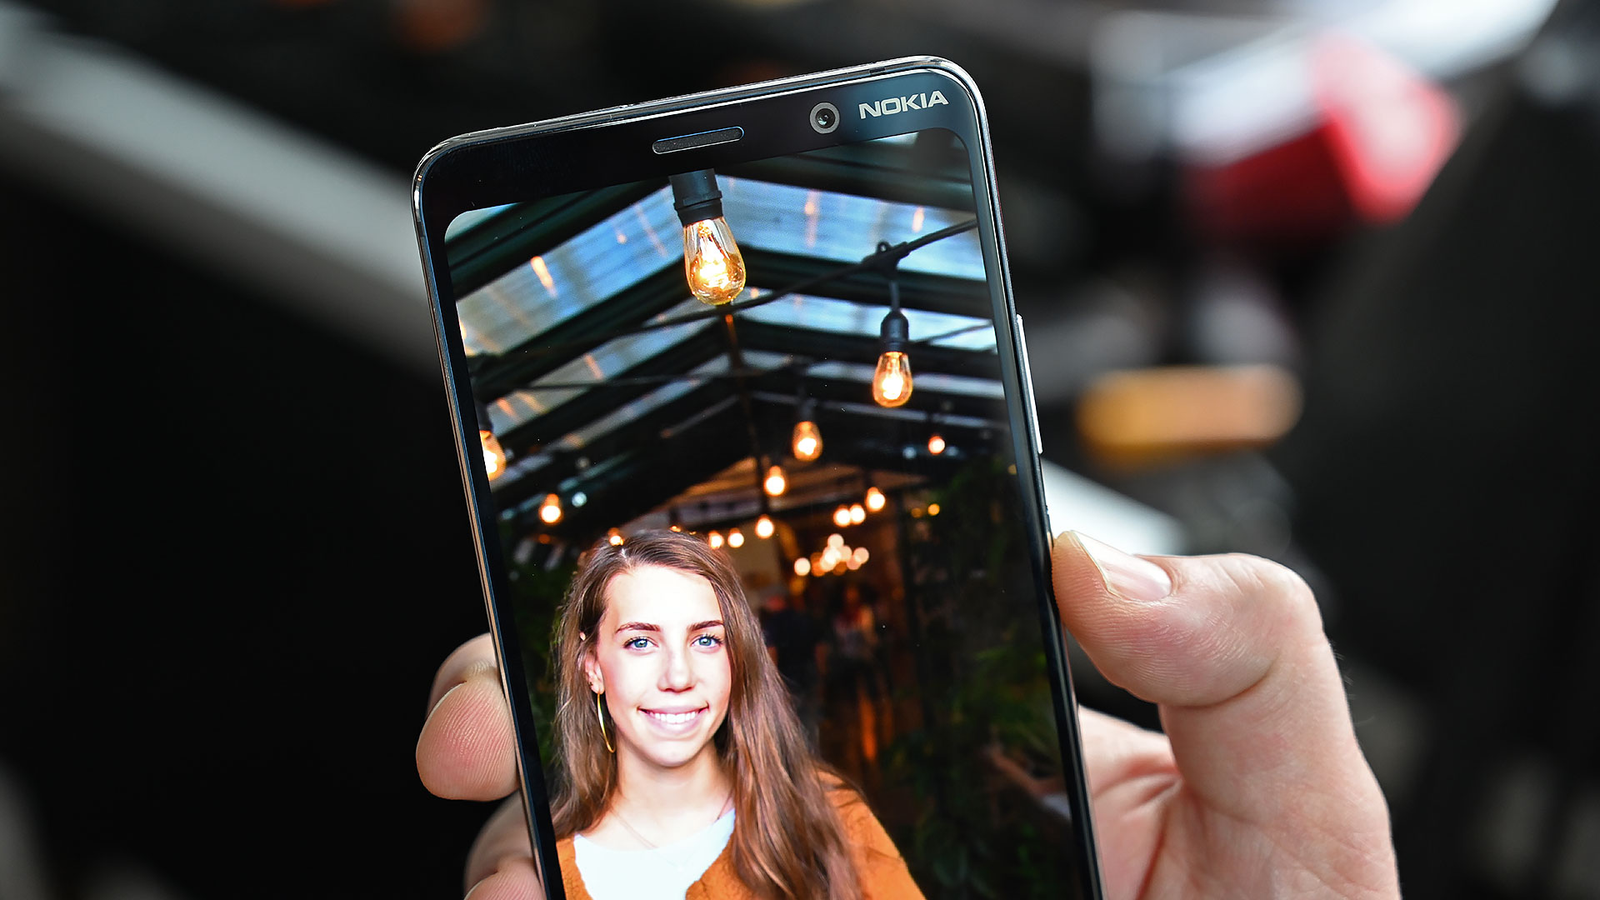 Look at the light bulbs in Nokia's sample pic and notice how the photo's focus smoothly transitions from sharp to blurry the further you go back, it's really quite impressive.